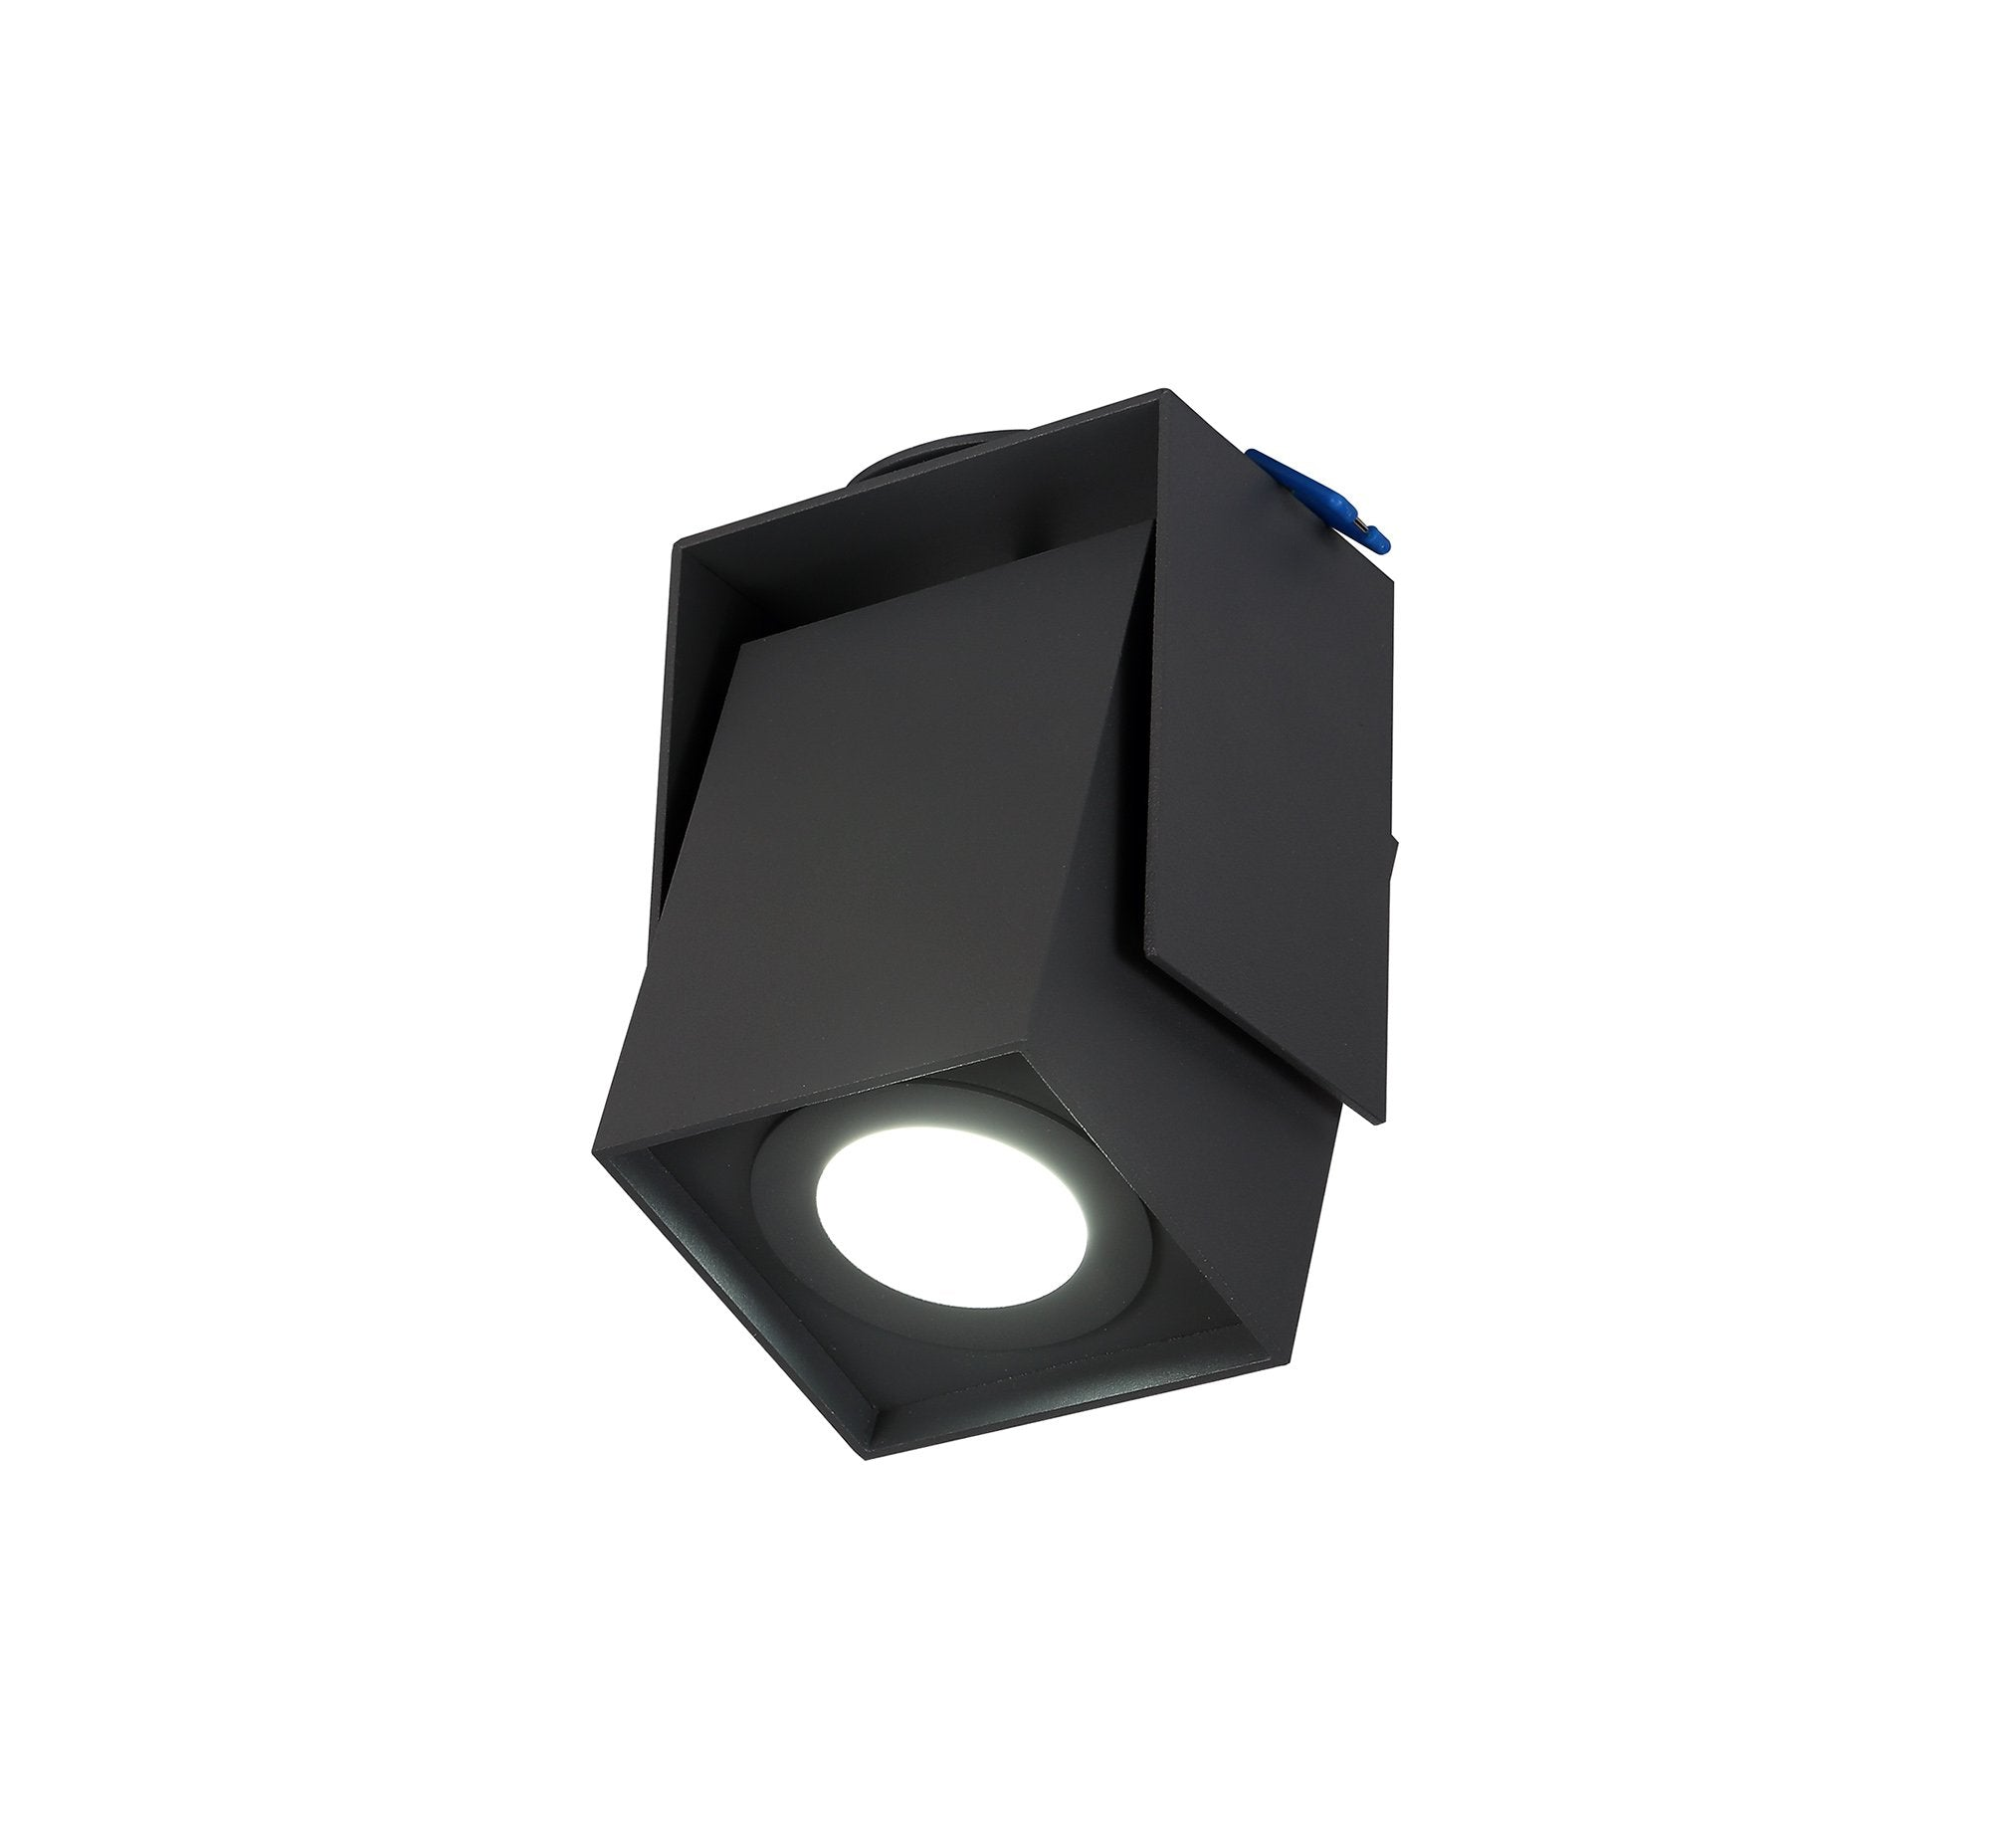 EVE Adjustable Square Spotlight, 1 Light GU10, Sand Anthracite, Cut Out: 62mm